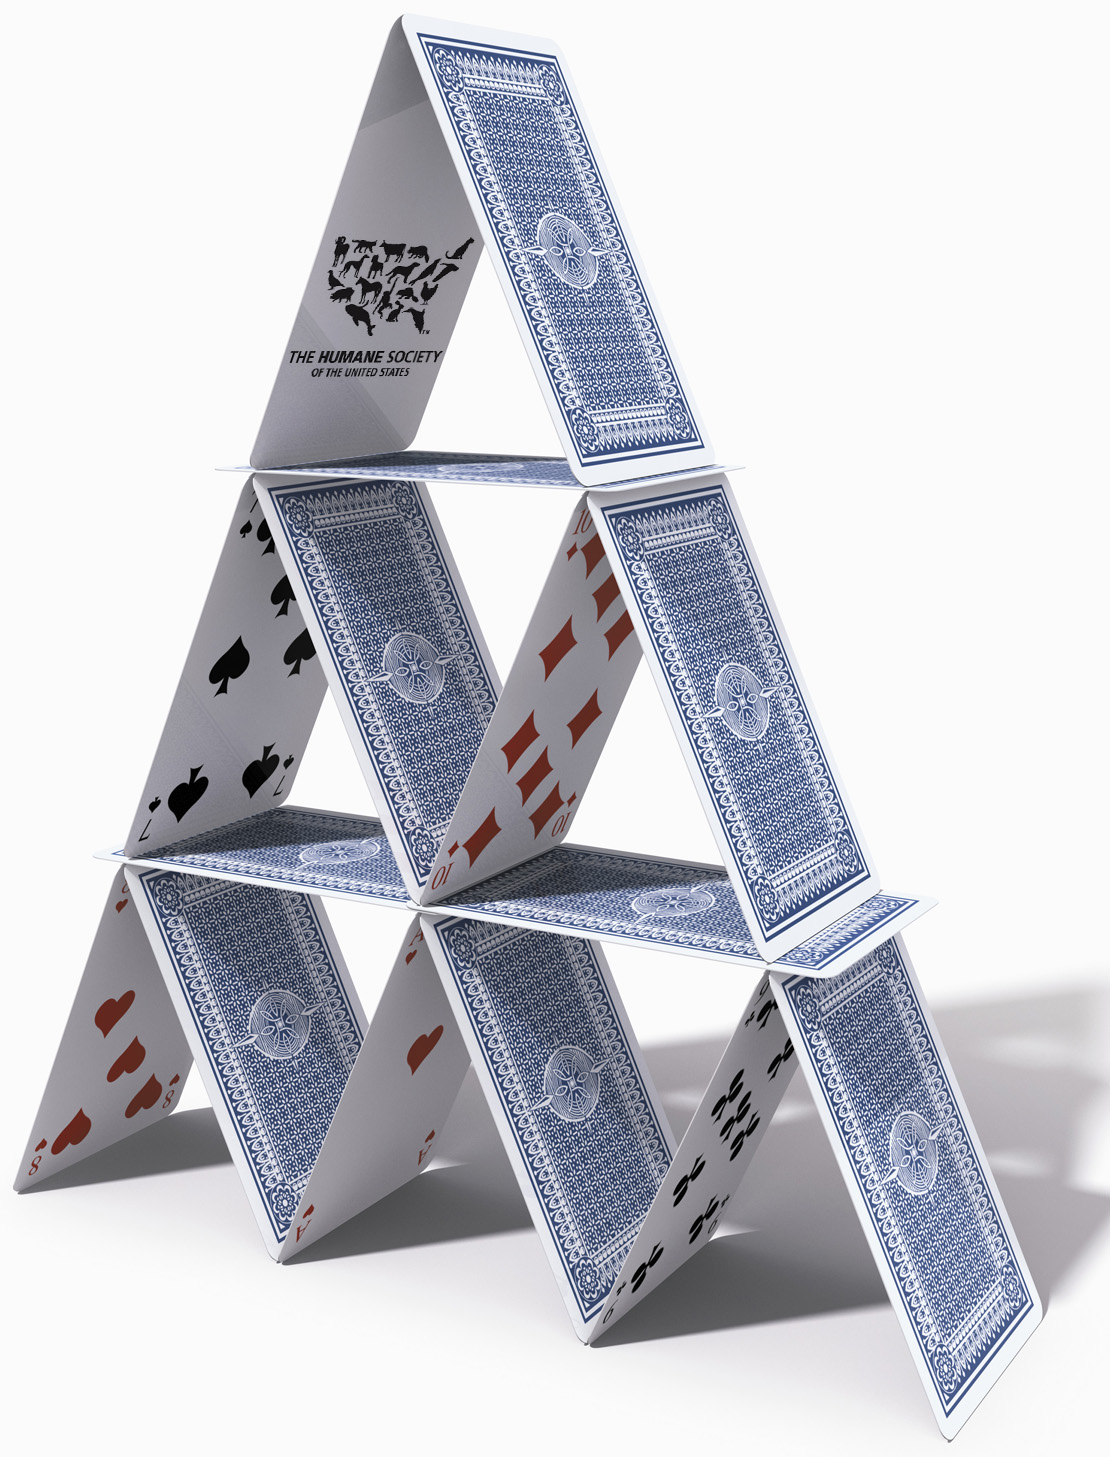 The '11 Million Members' Myth, Again - HumaneWatch House Of Playing Cards